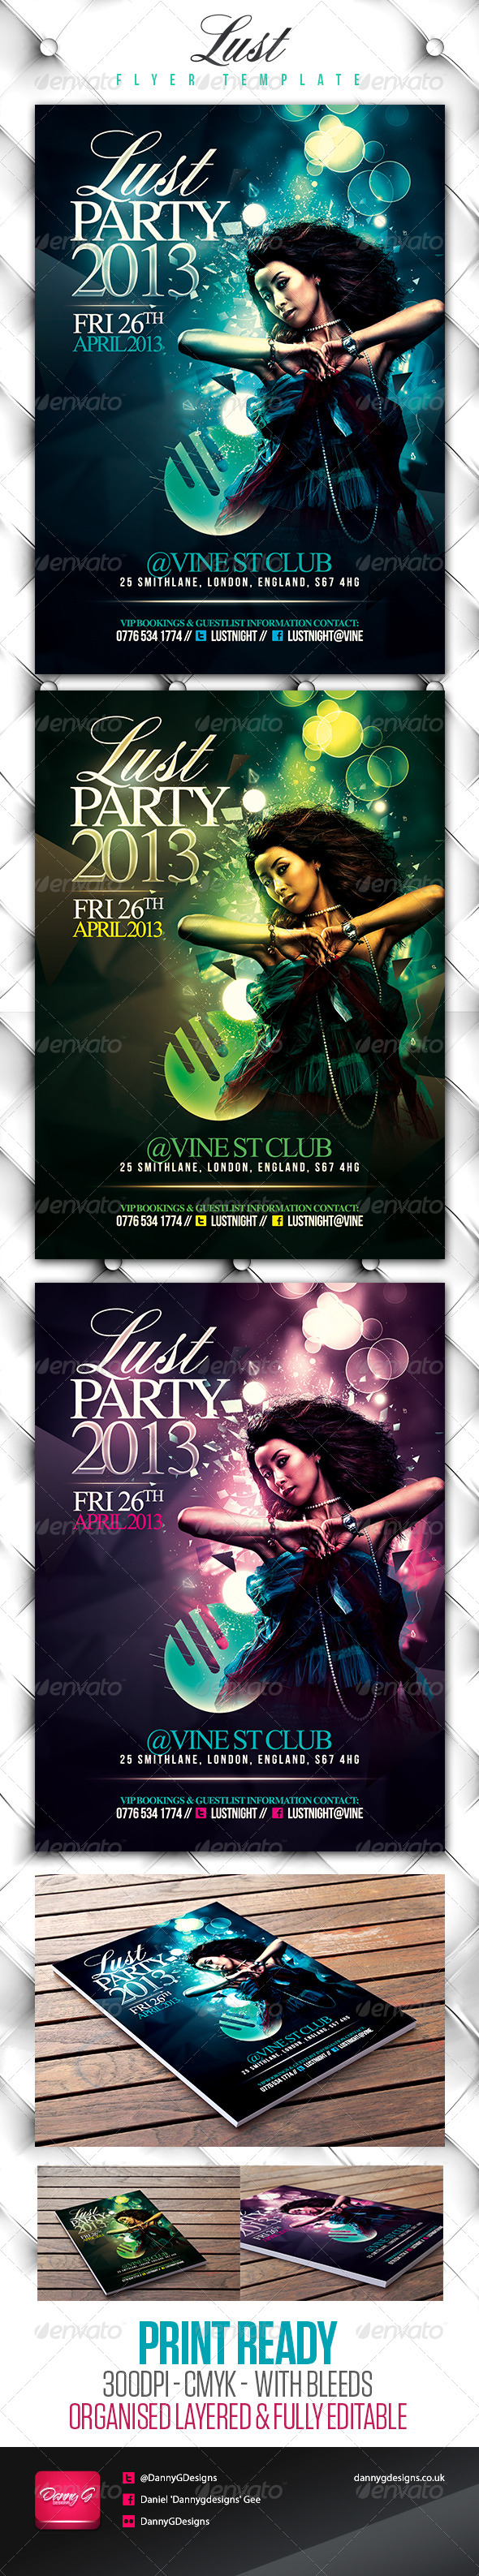 Lust Elegant Flyer 3 Colour Pack - Clubs & Parties Events